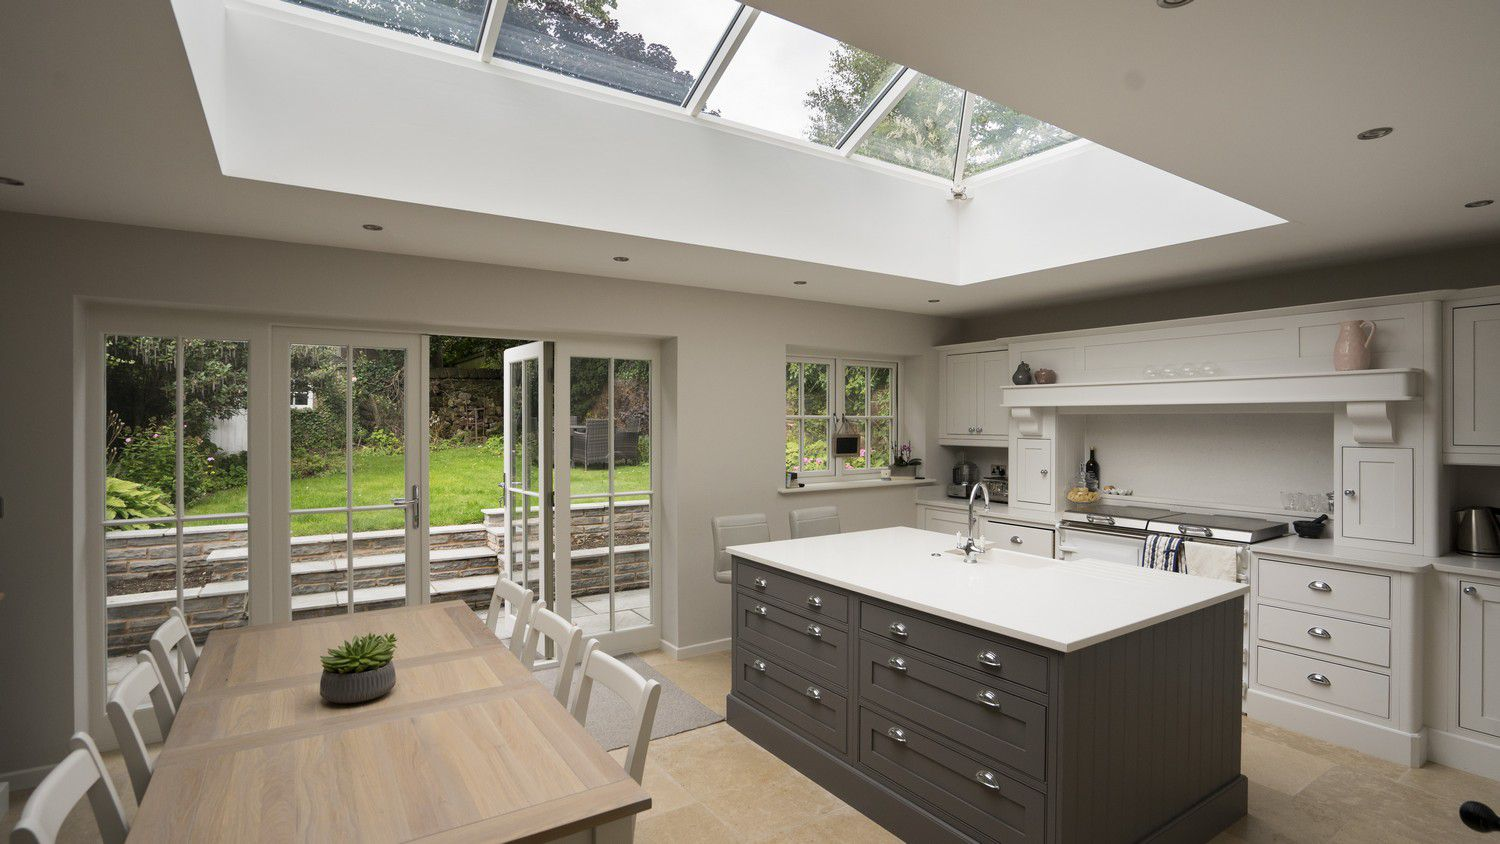 Wirral Builders Opb Extension Build Gallery